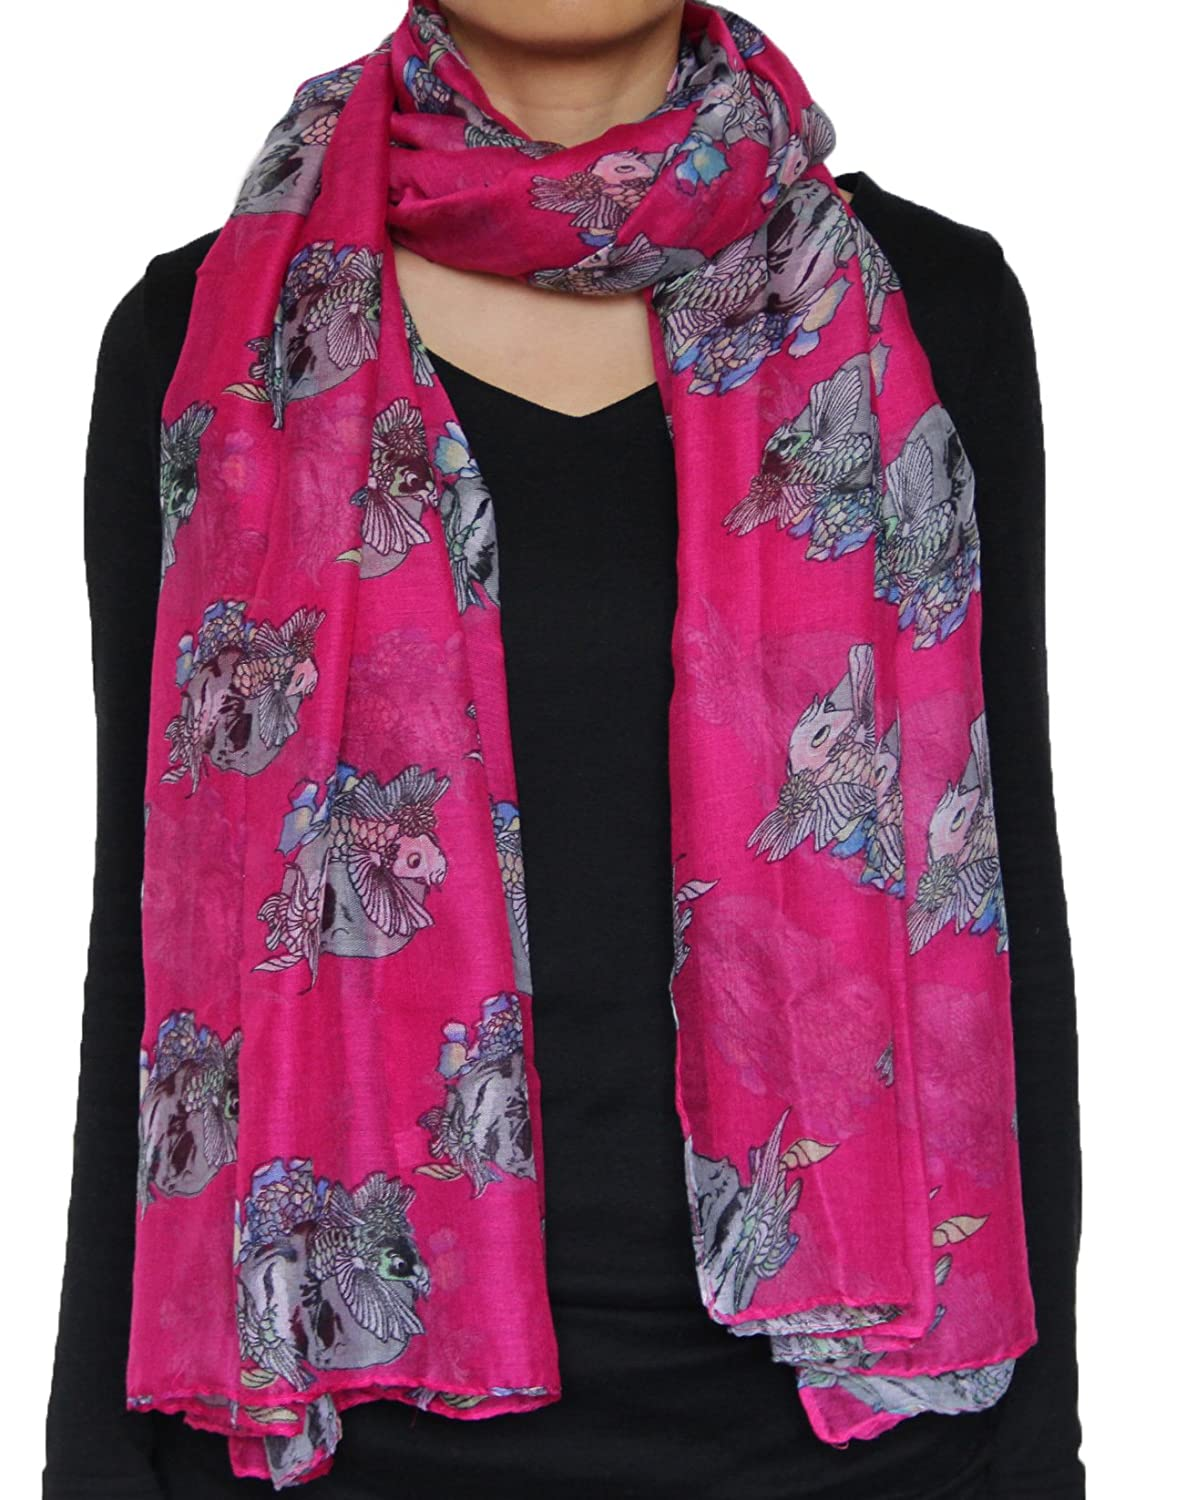 Seamaidmm Fashion Carp Fish In Skull W/ Blue Bellflower Voile Scarf/Shawl Fuschia